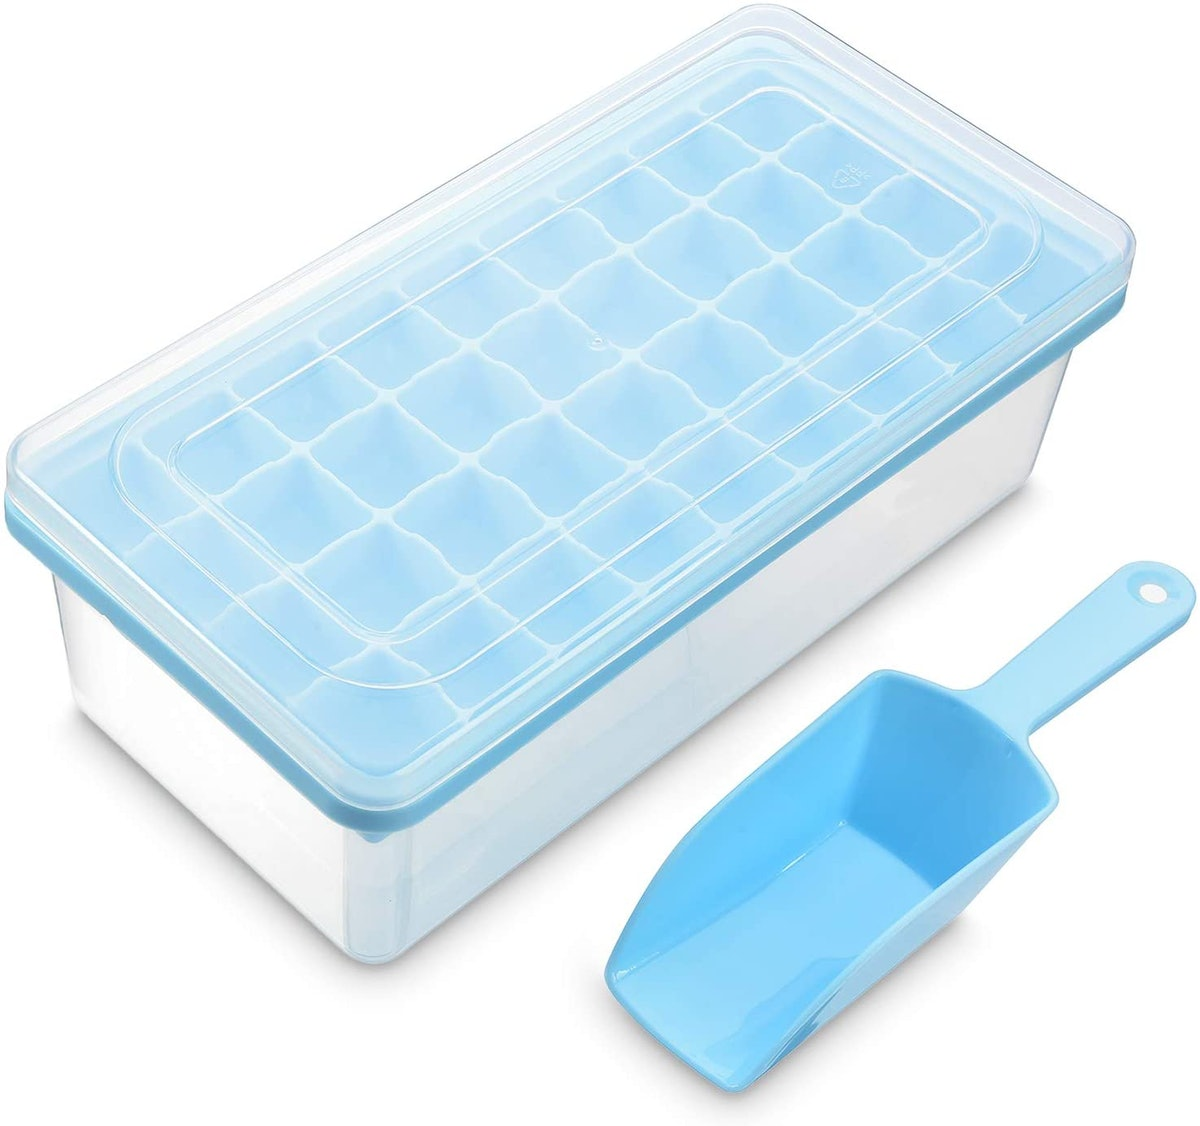 Yoove Ice Cue Tray with Lid & Bin